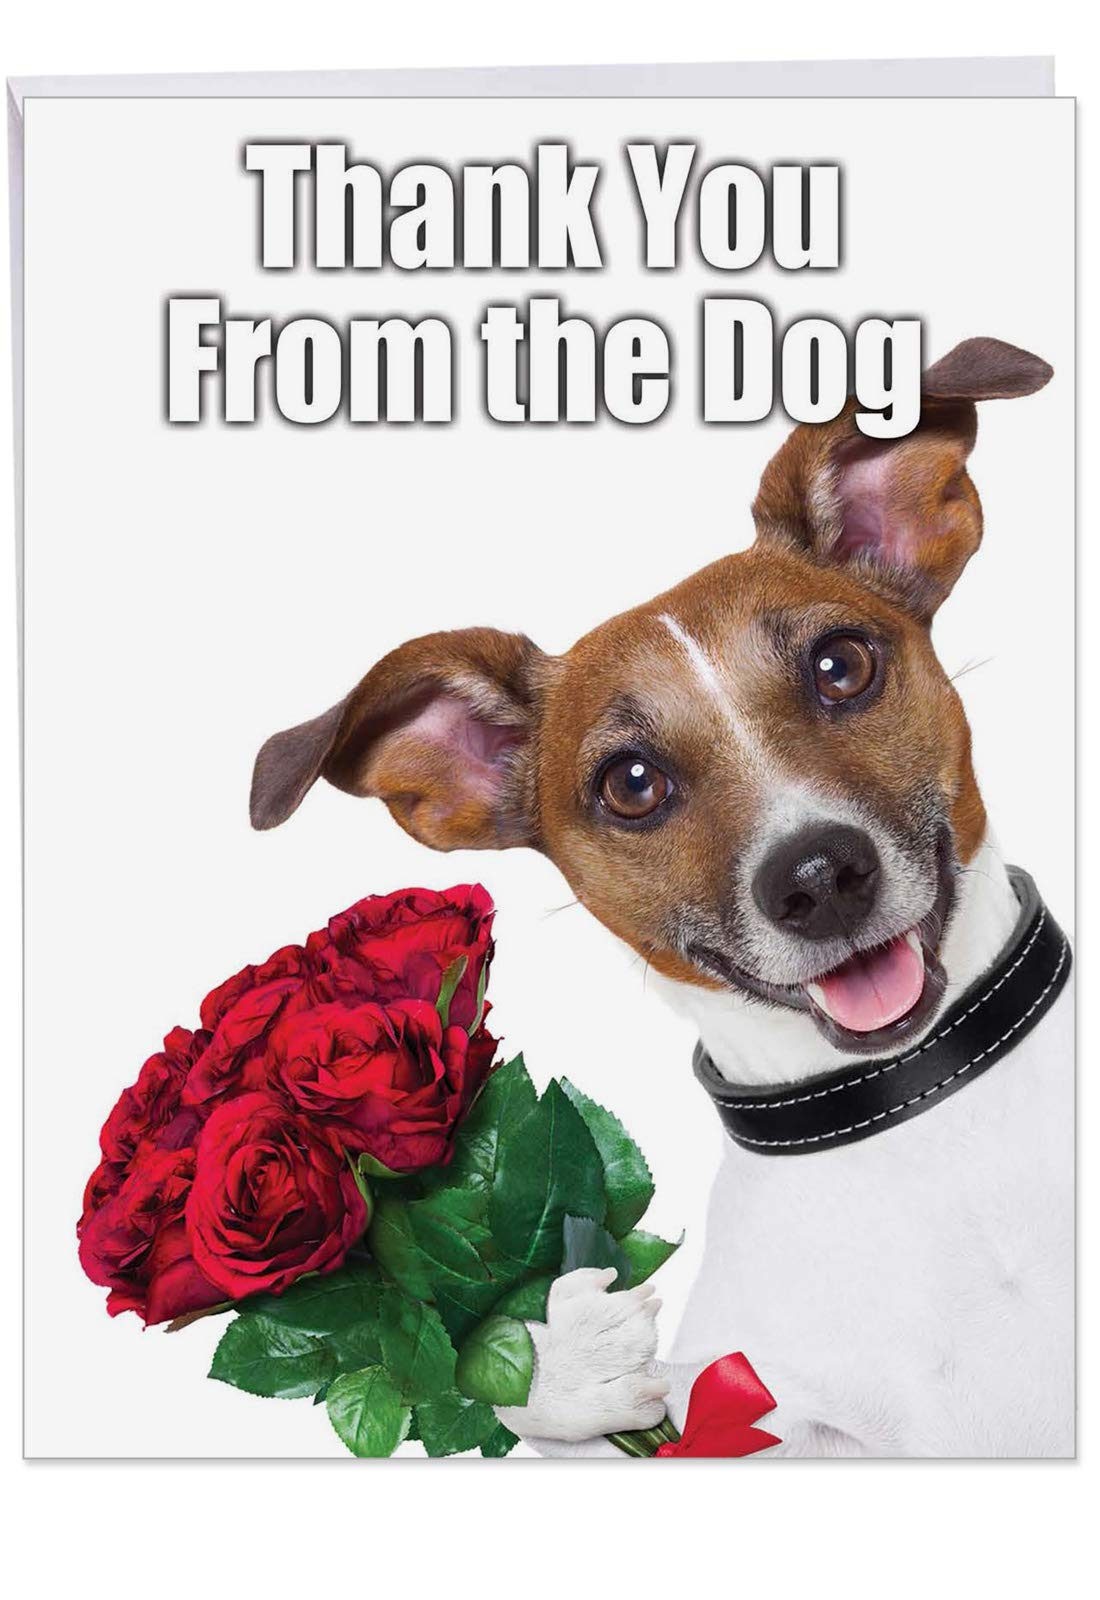 XL 'Thank You From the Dog' Card with Envelope 8.5 x 11 Inch - Appreciation Greeting Card with Cute Puppy Holding a Bouquet, Large Stationery for Birthdays, Holidays, Parties J3614